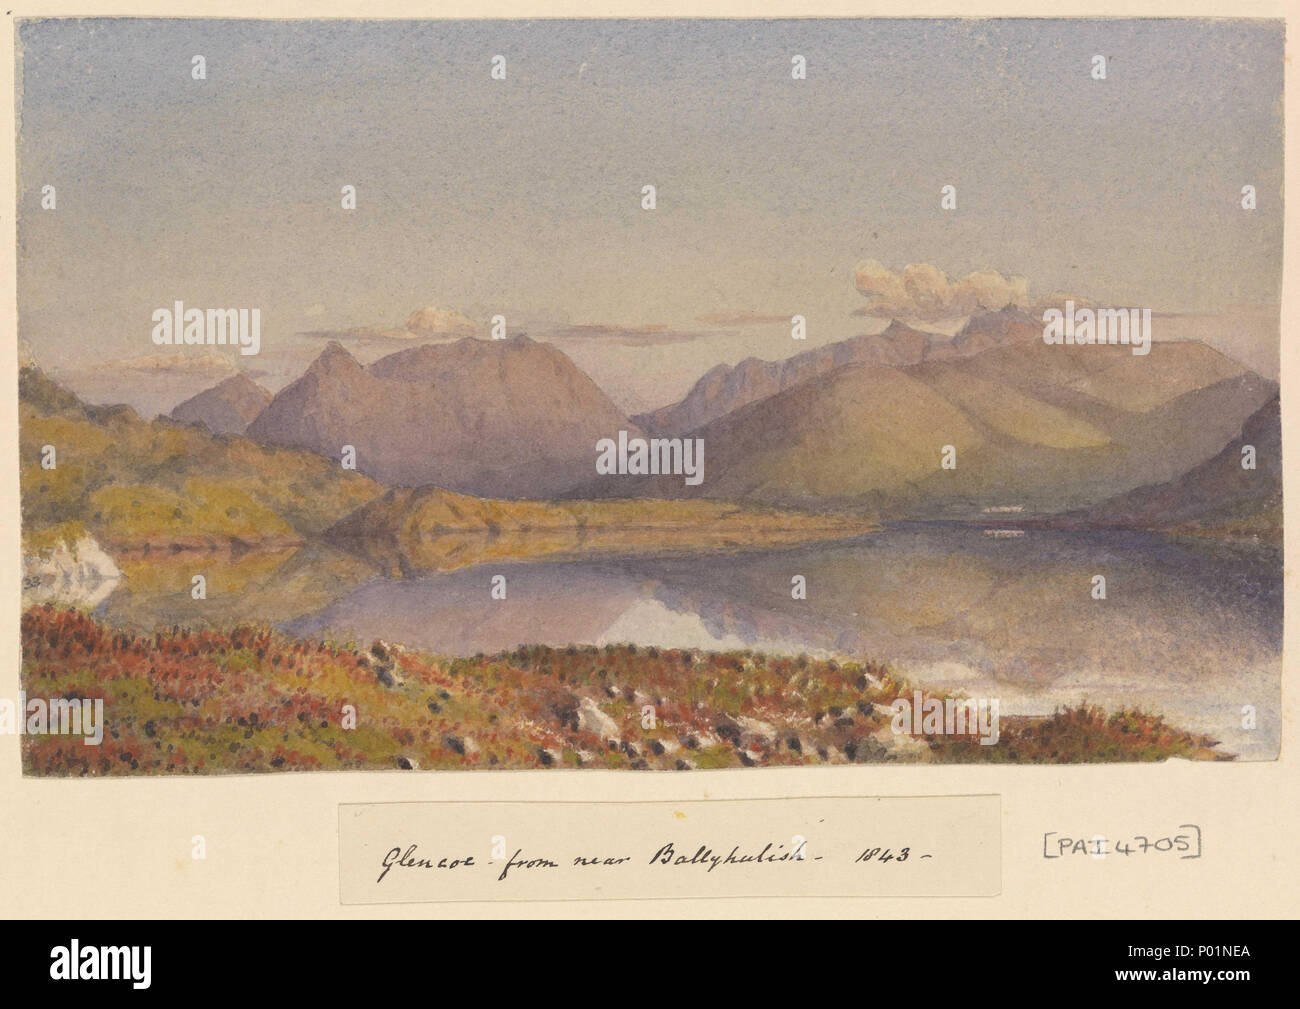 .  English: 'Glencoe from near Ballyhulish, 1843' [Scotland] No. 33 in Fanshawe's Baltic and later album, 1843 - 83. Captioned by the artist on the album page below the image, as title. The view is presumably eastwards along Loch Leven with Glencoe in the right distance (by the white scraped highlight). If so this suggests Fanshawe is looking across the loch from some point east of North Ballachulish rather than from Ballachulish itself , which is on the south side and (though closer to the Glen) probably does not afford this view. Glencoe is a notorious site, as in 1692, there was the premedi - Stock Image